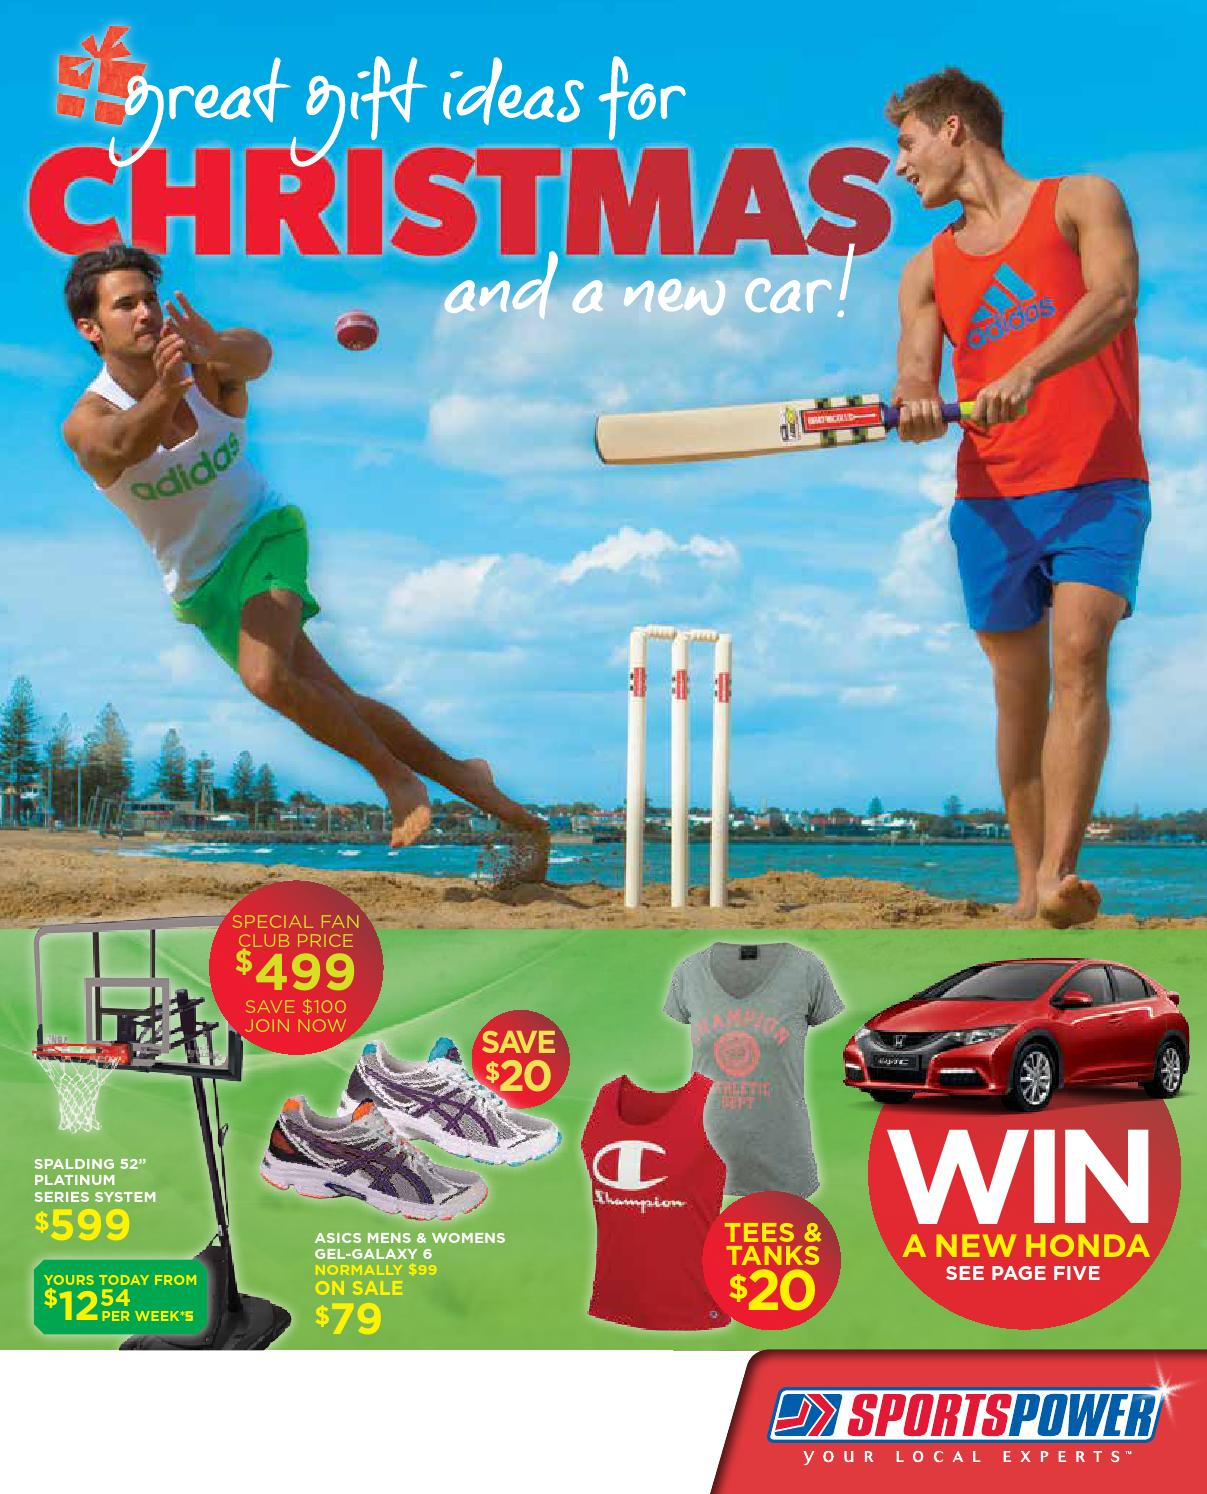 Sportspower - Christmas by Associated Retailers Ltd - issuu